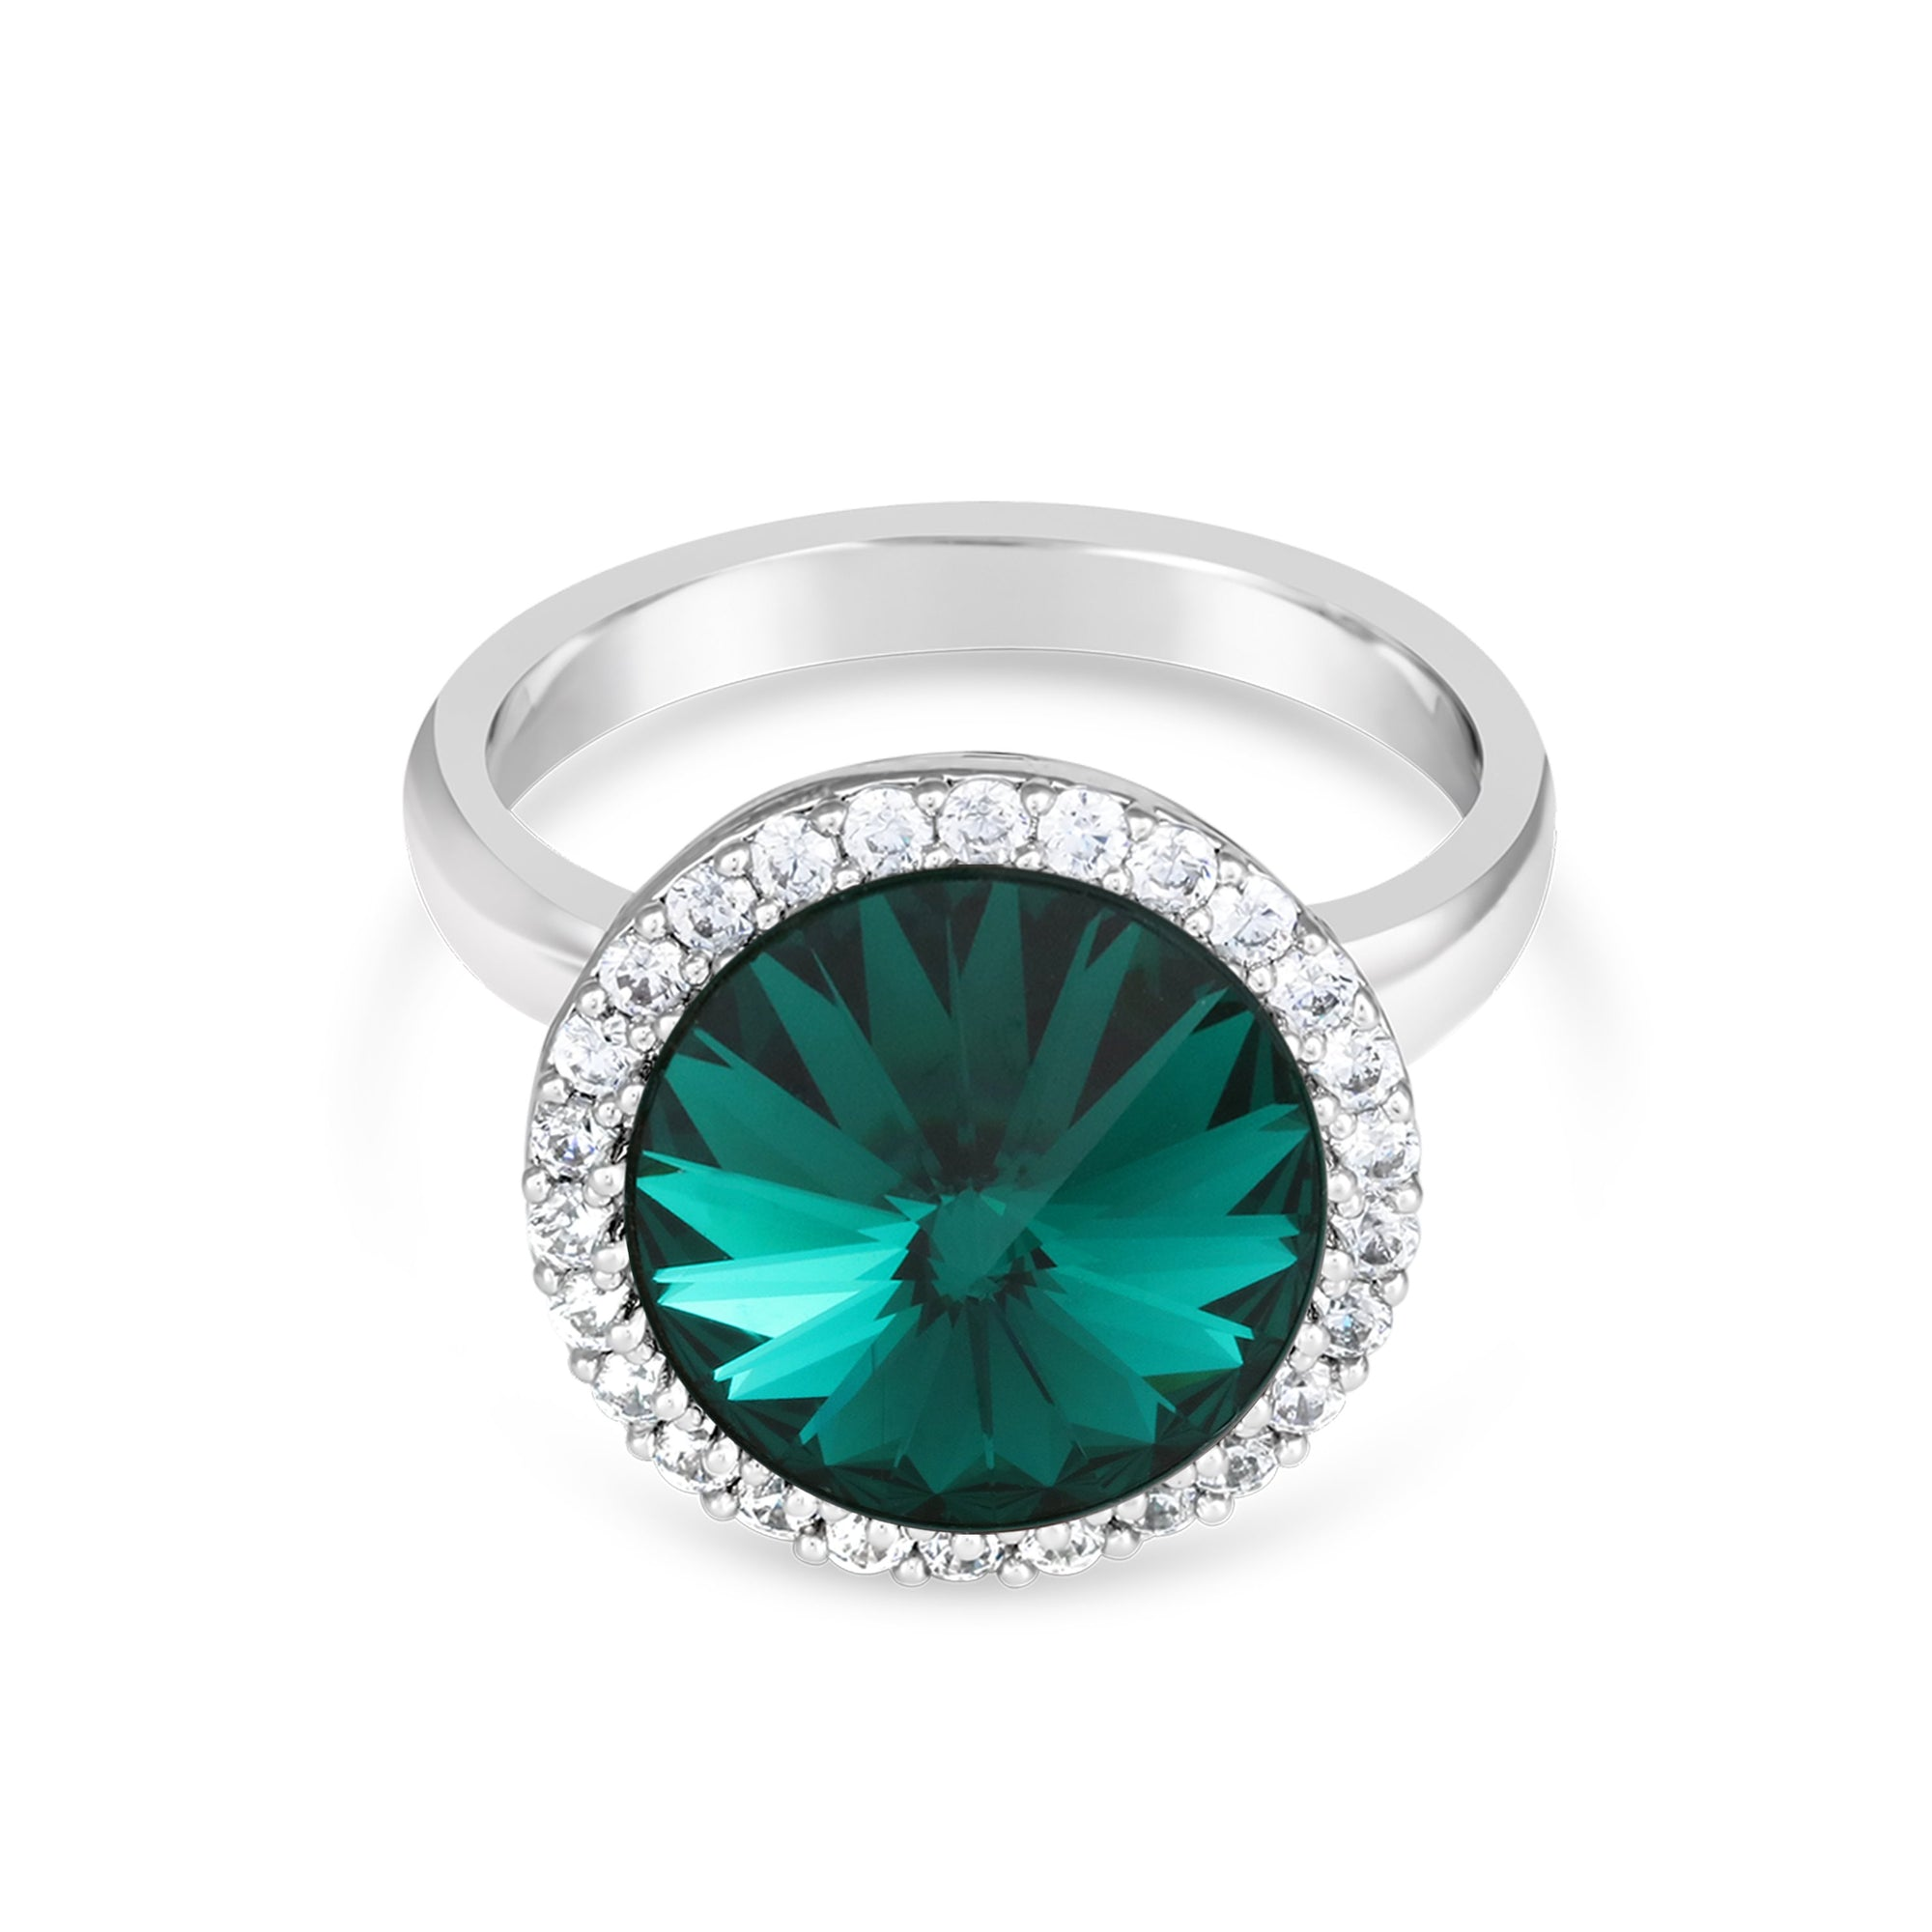 FANCY HALO RING EMERALD RING - FOREVER - ESSENTIALS - EMERALD 001